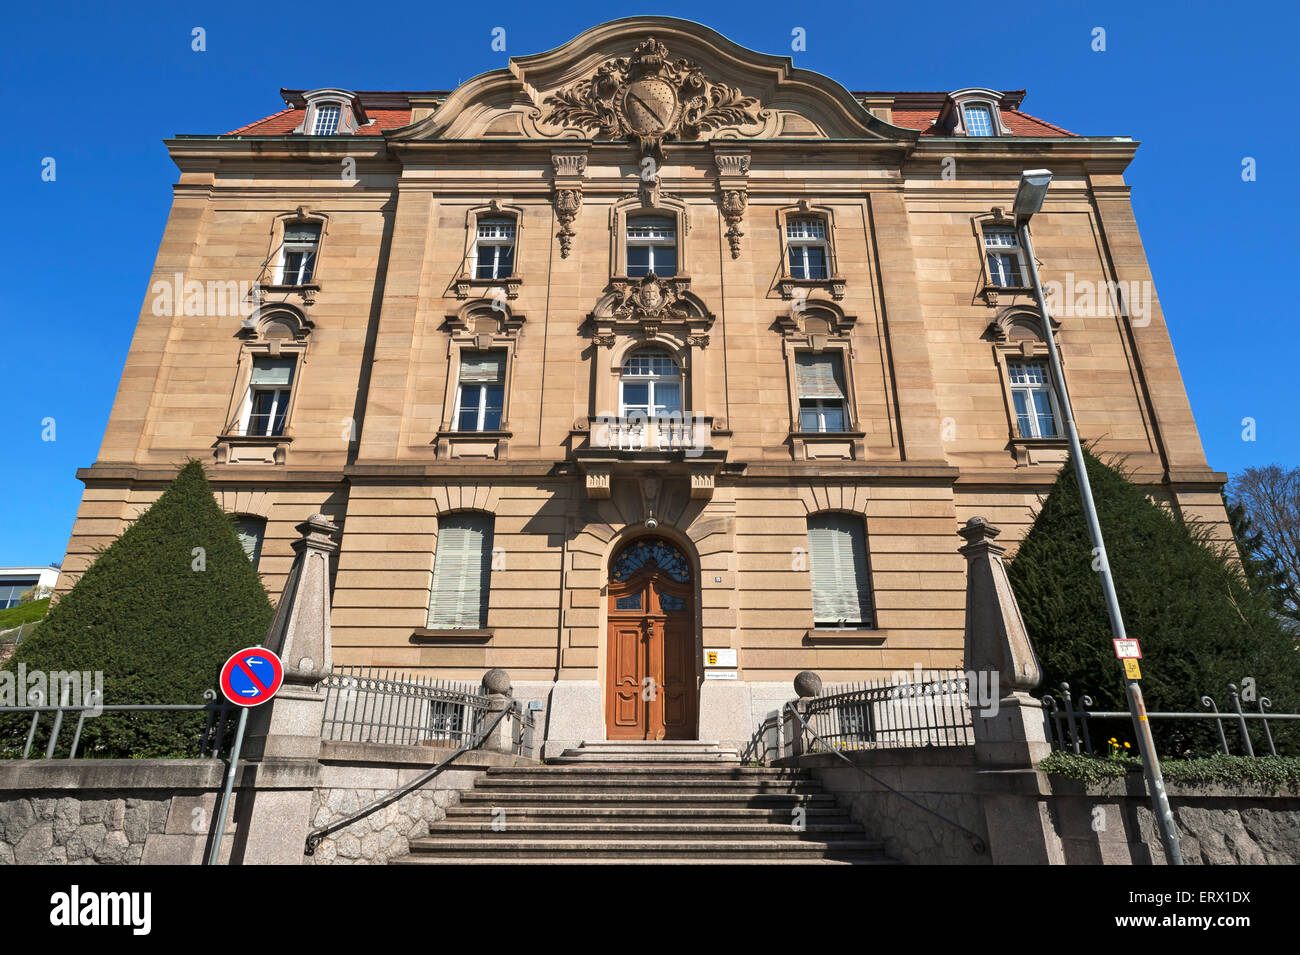 District Court, built from 1899 to 1902, Lahr, Baden-Württemberg, Germany - Stock Image